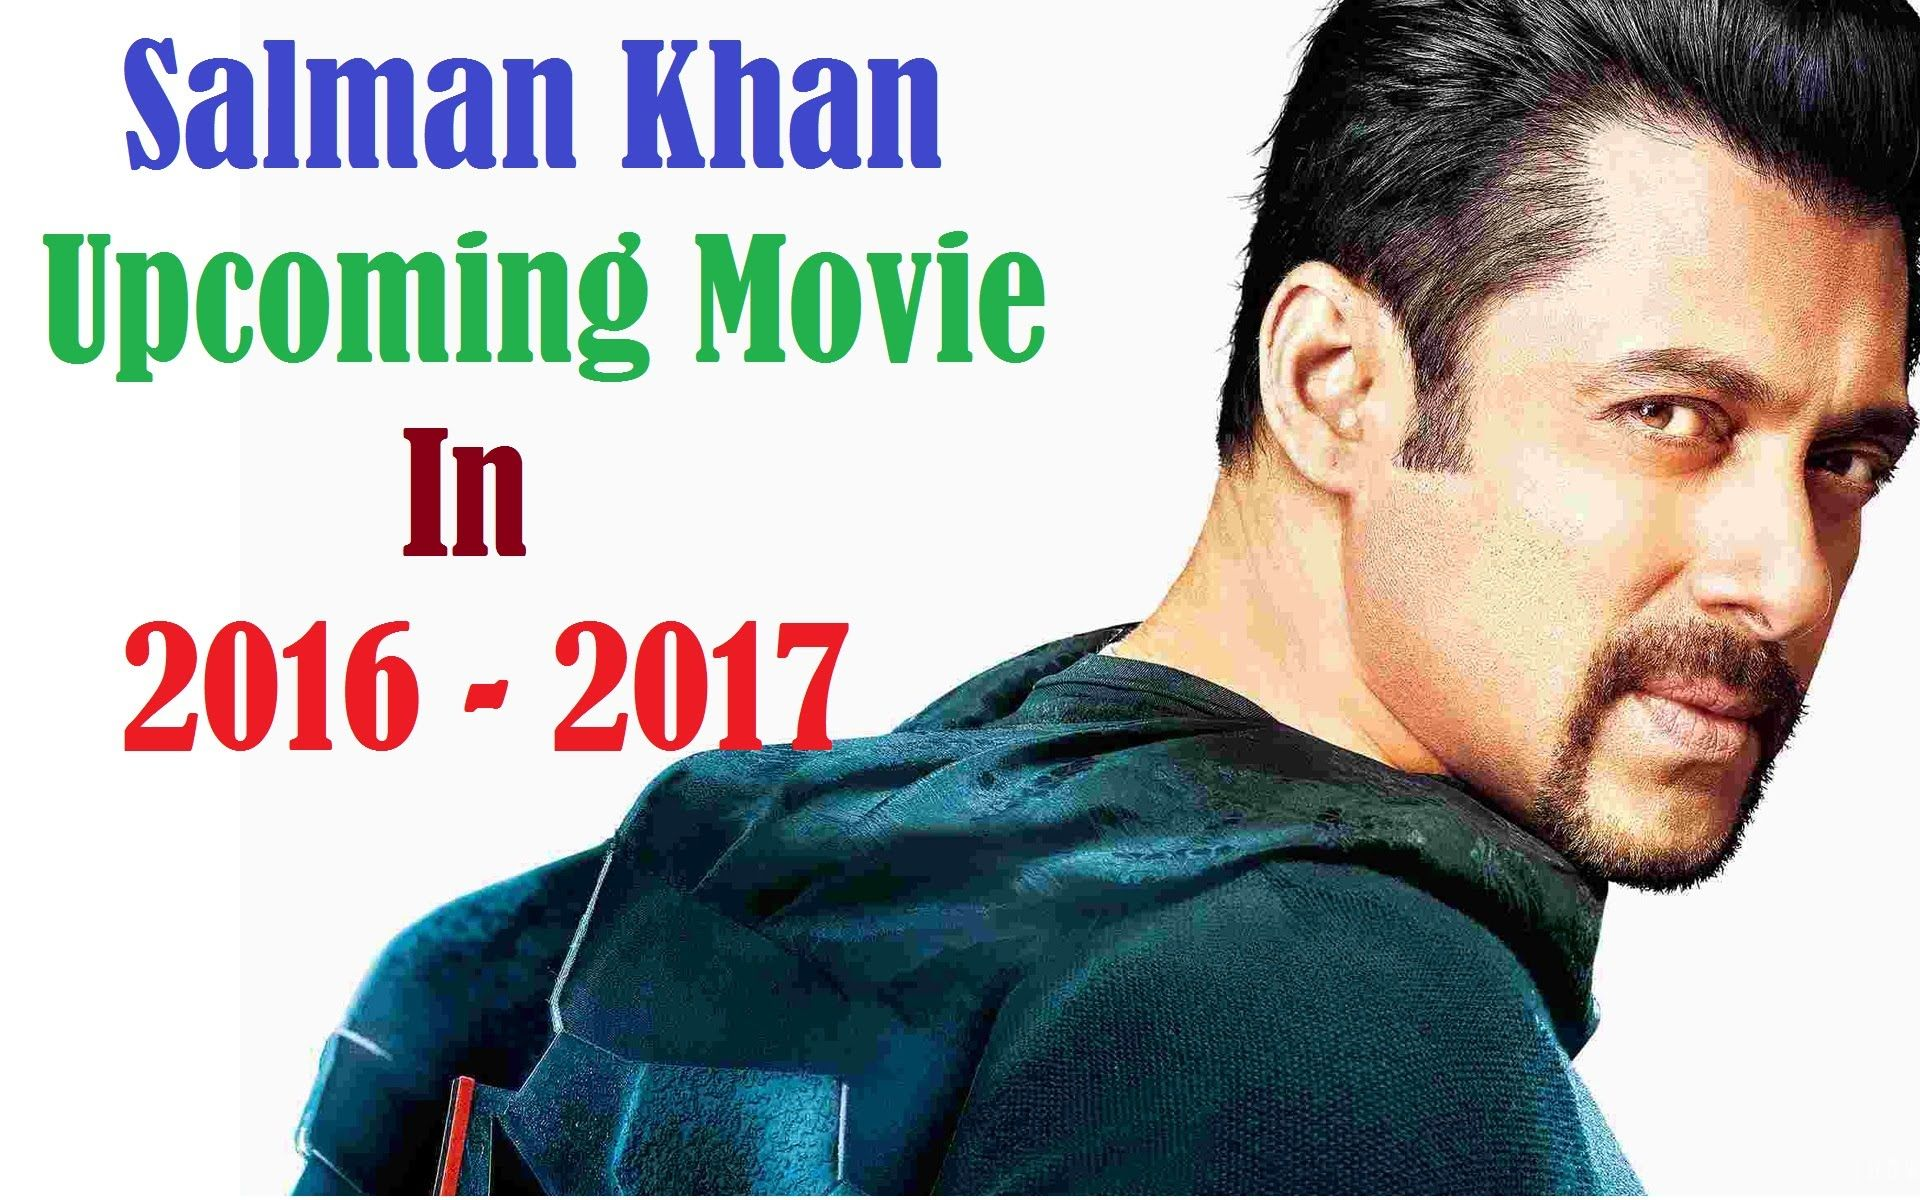 New Hindi Movei 2018 2019 Bolliwood: Salman Khan Upcoming Movies 2016, 2017, 2018 Bollywood